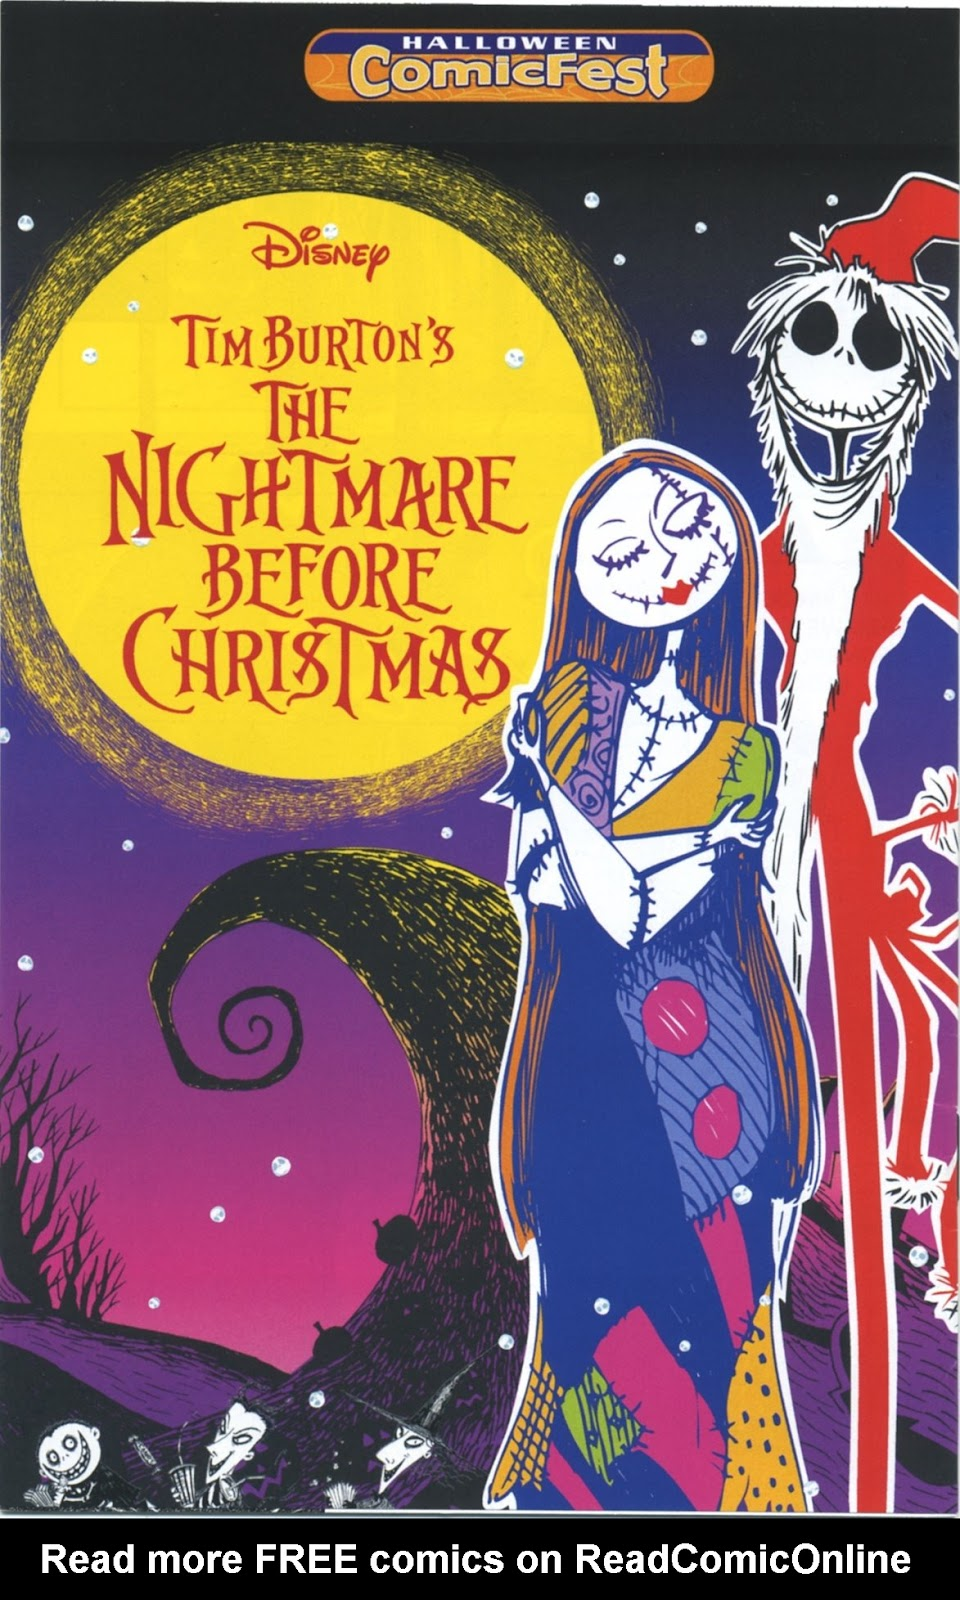 tim burtons the nightmare before christmas halloween comicfest full page 1 - The Nightmare Before Christmas Free Online